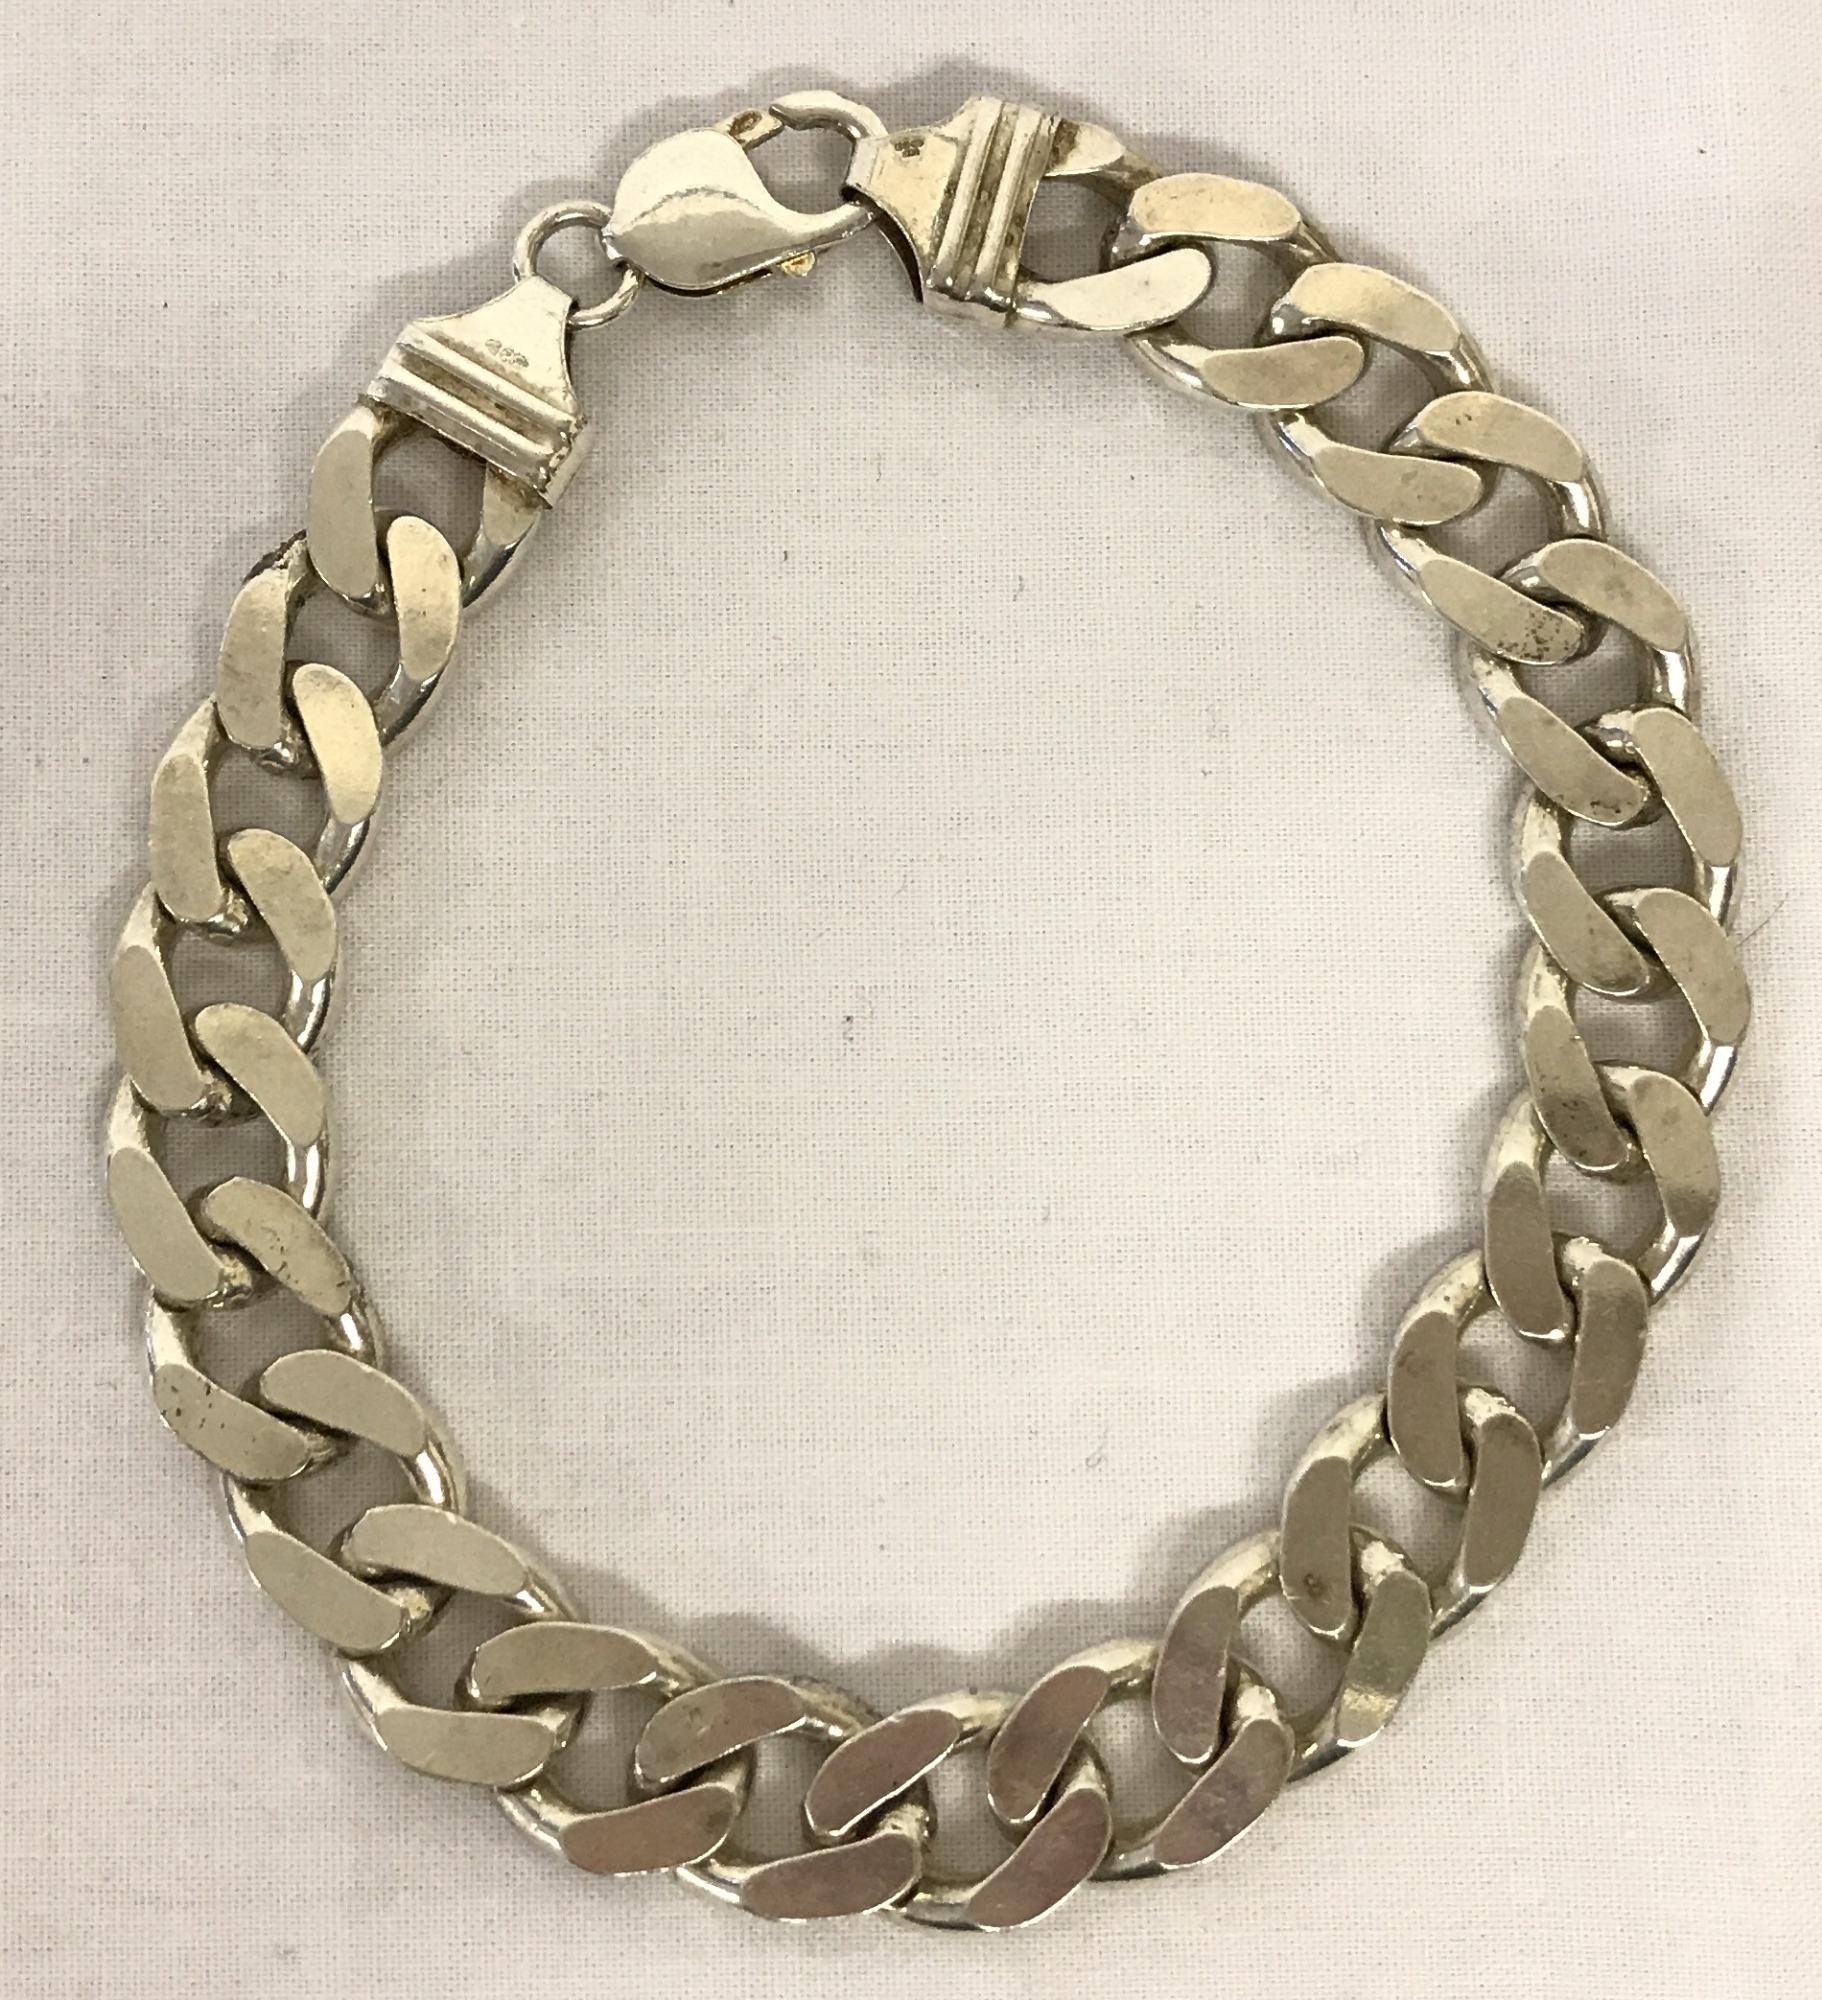 A modern white metal heavy curb chain bracelet with lobster clasp.